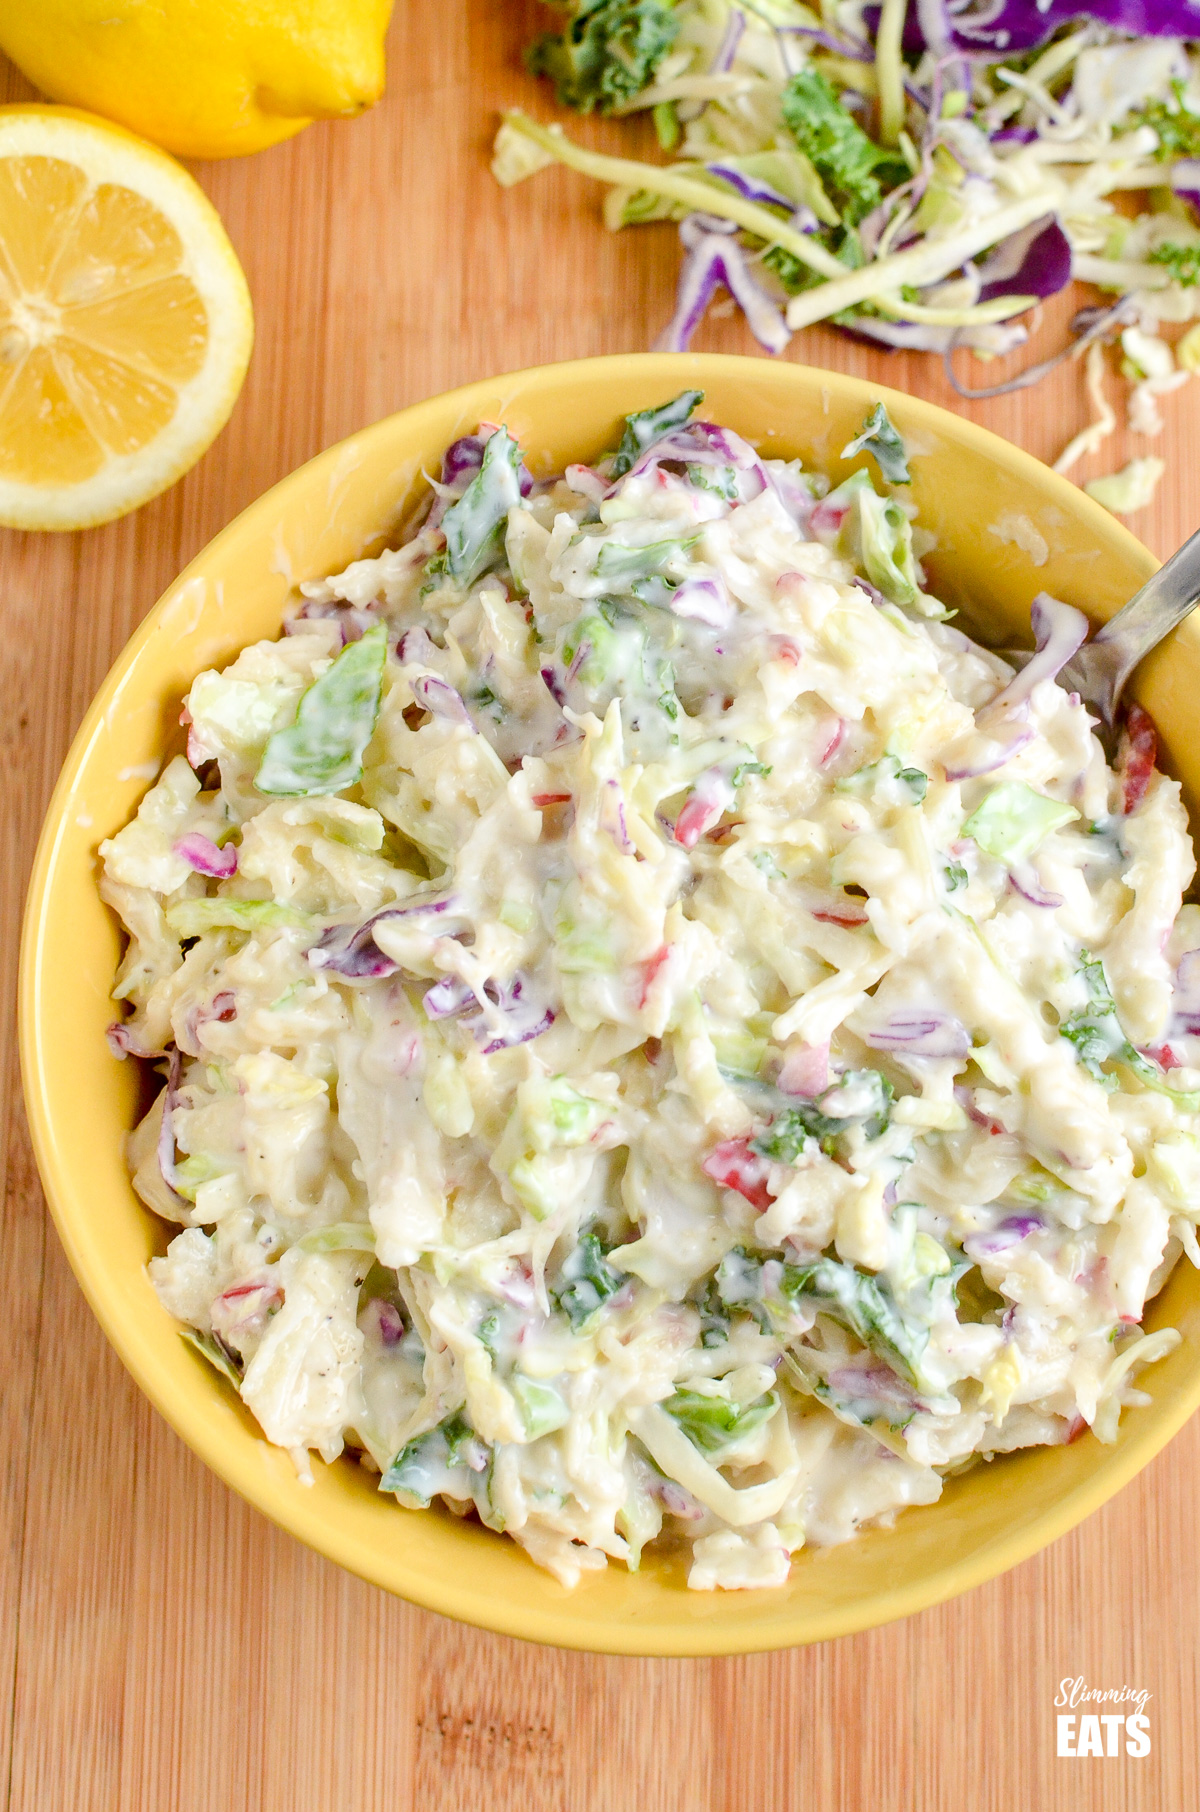 Sweet Tangy and Creamy Apple Coleslaw in a yellow bowl with scattered halved lemons.